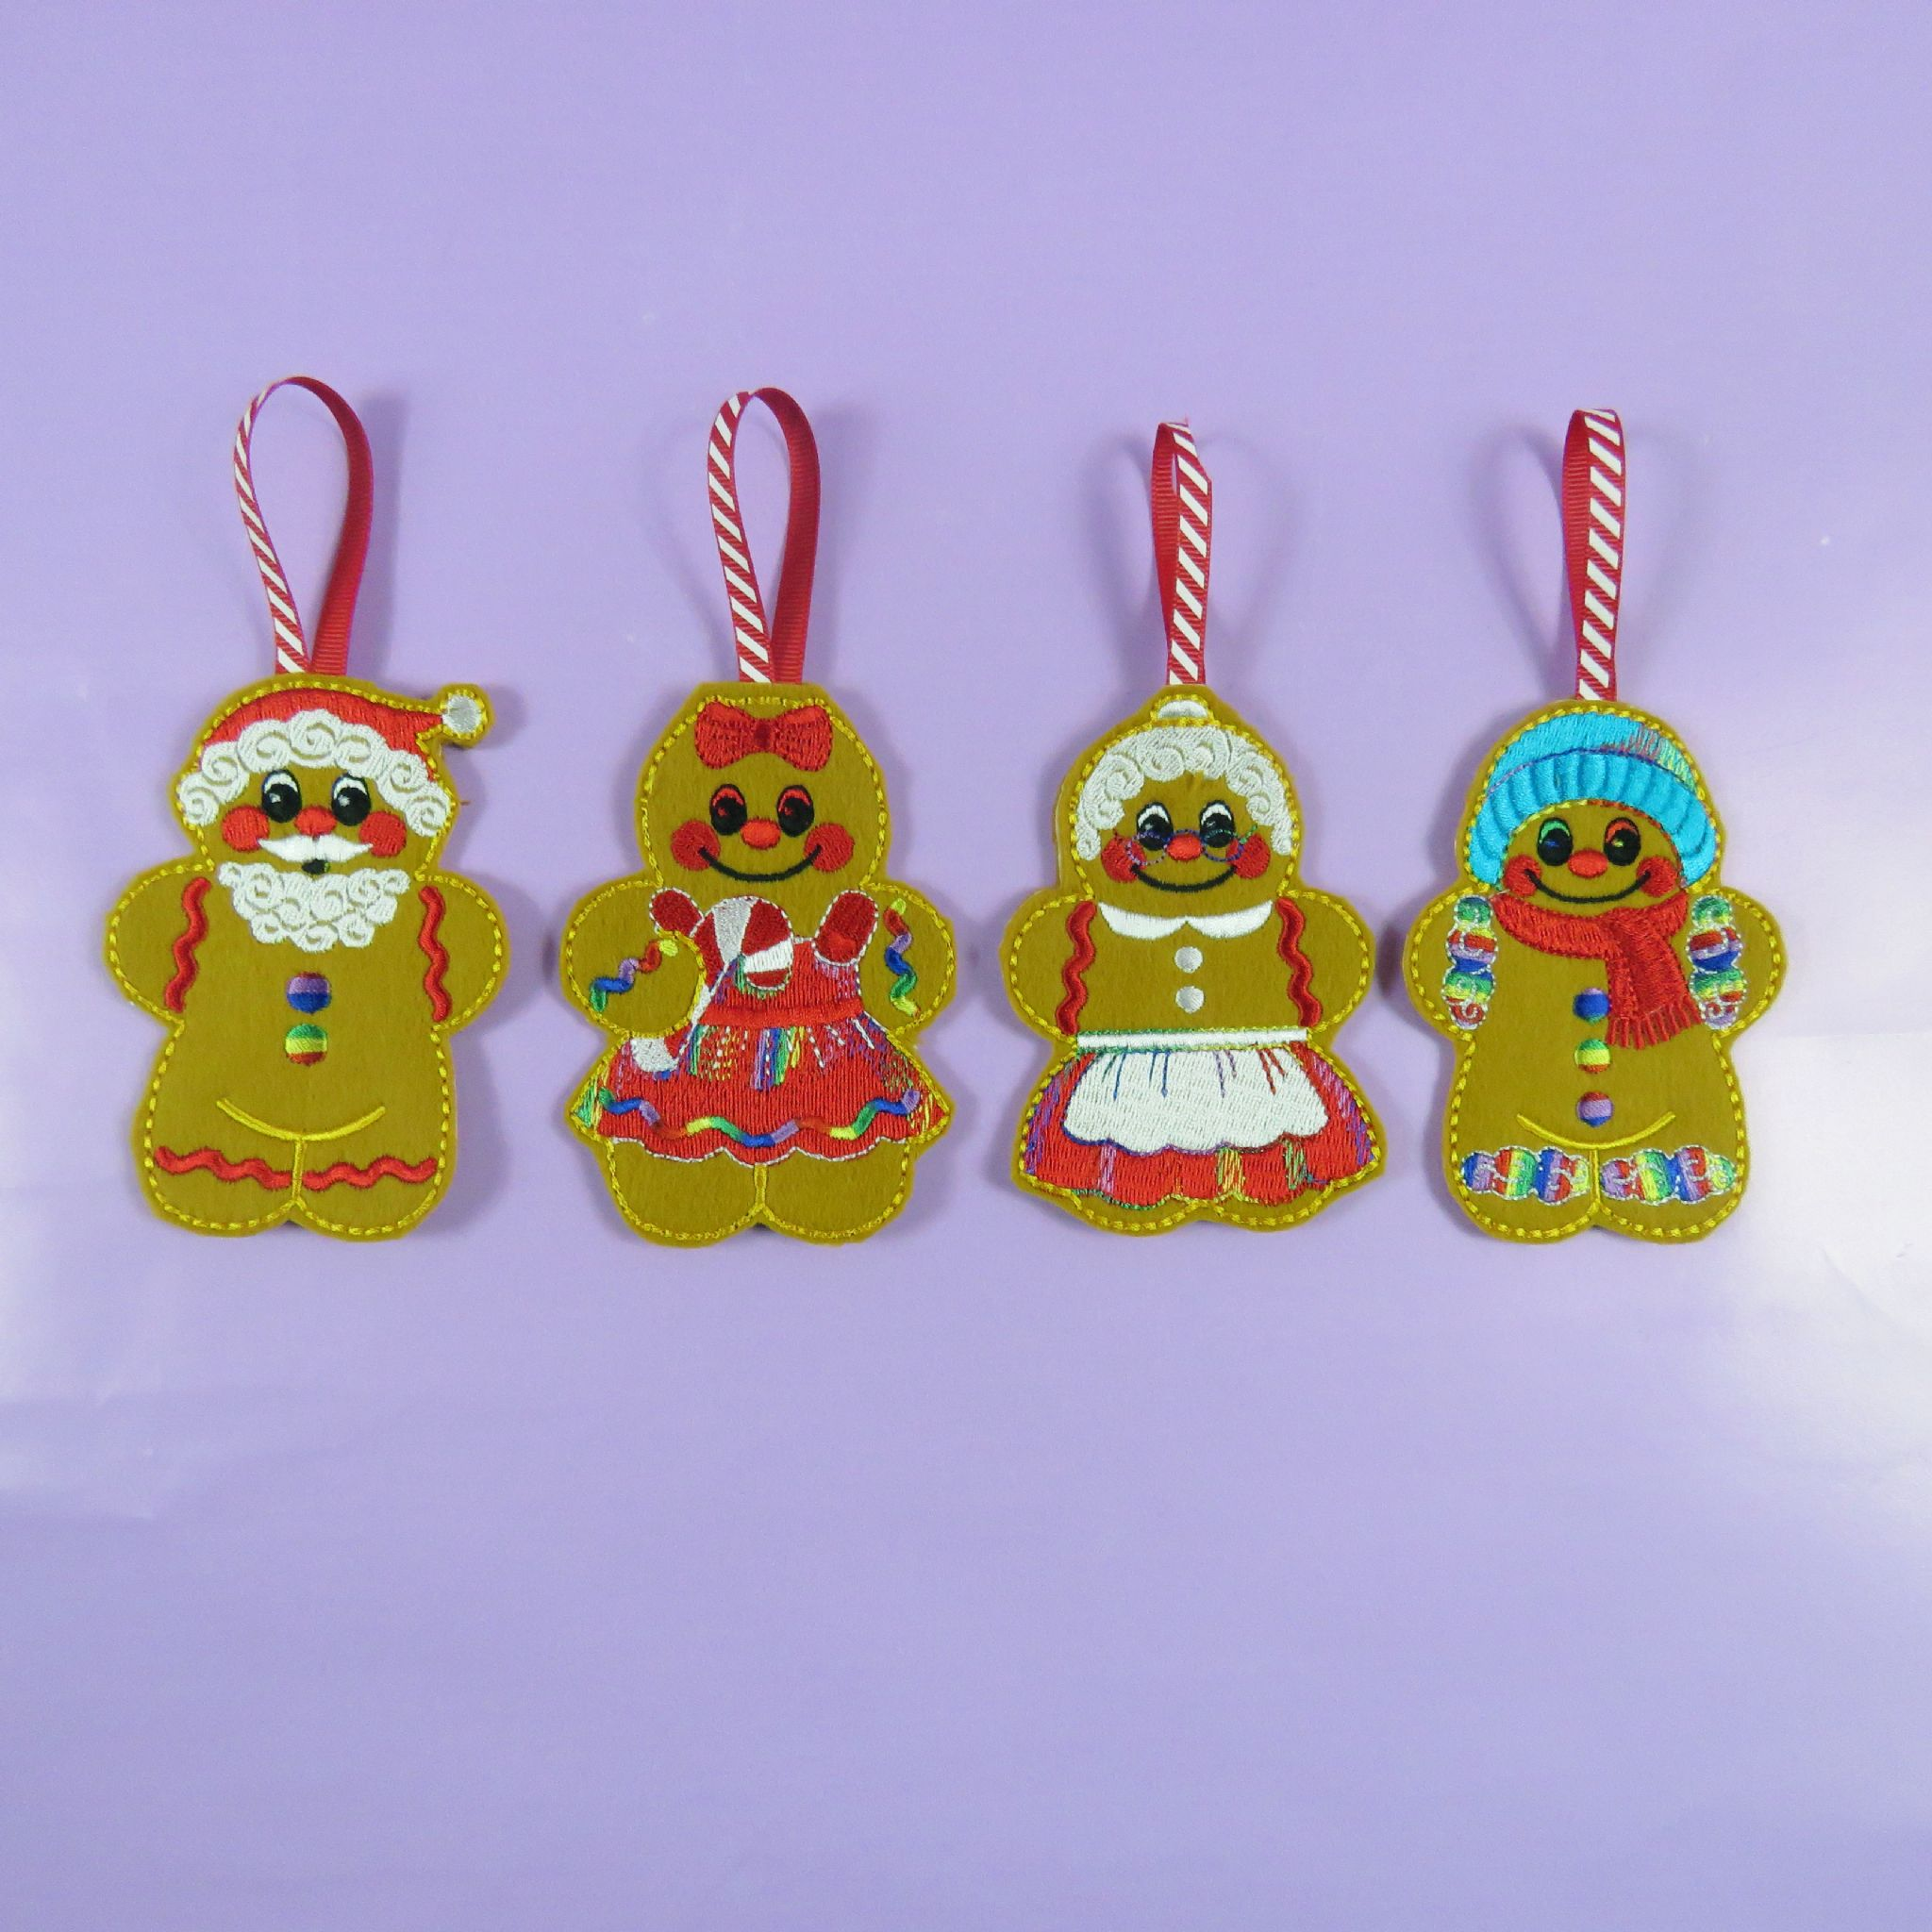 xmas jumpers wholesale